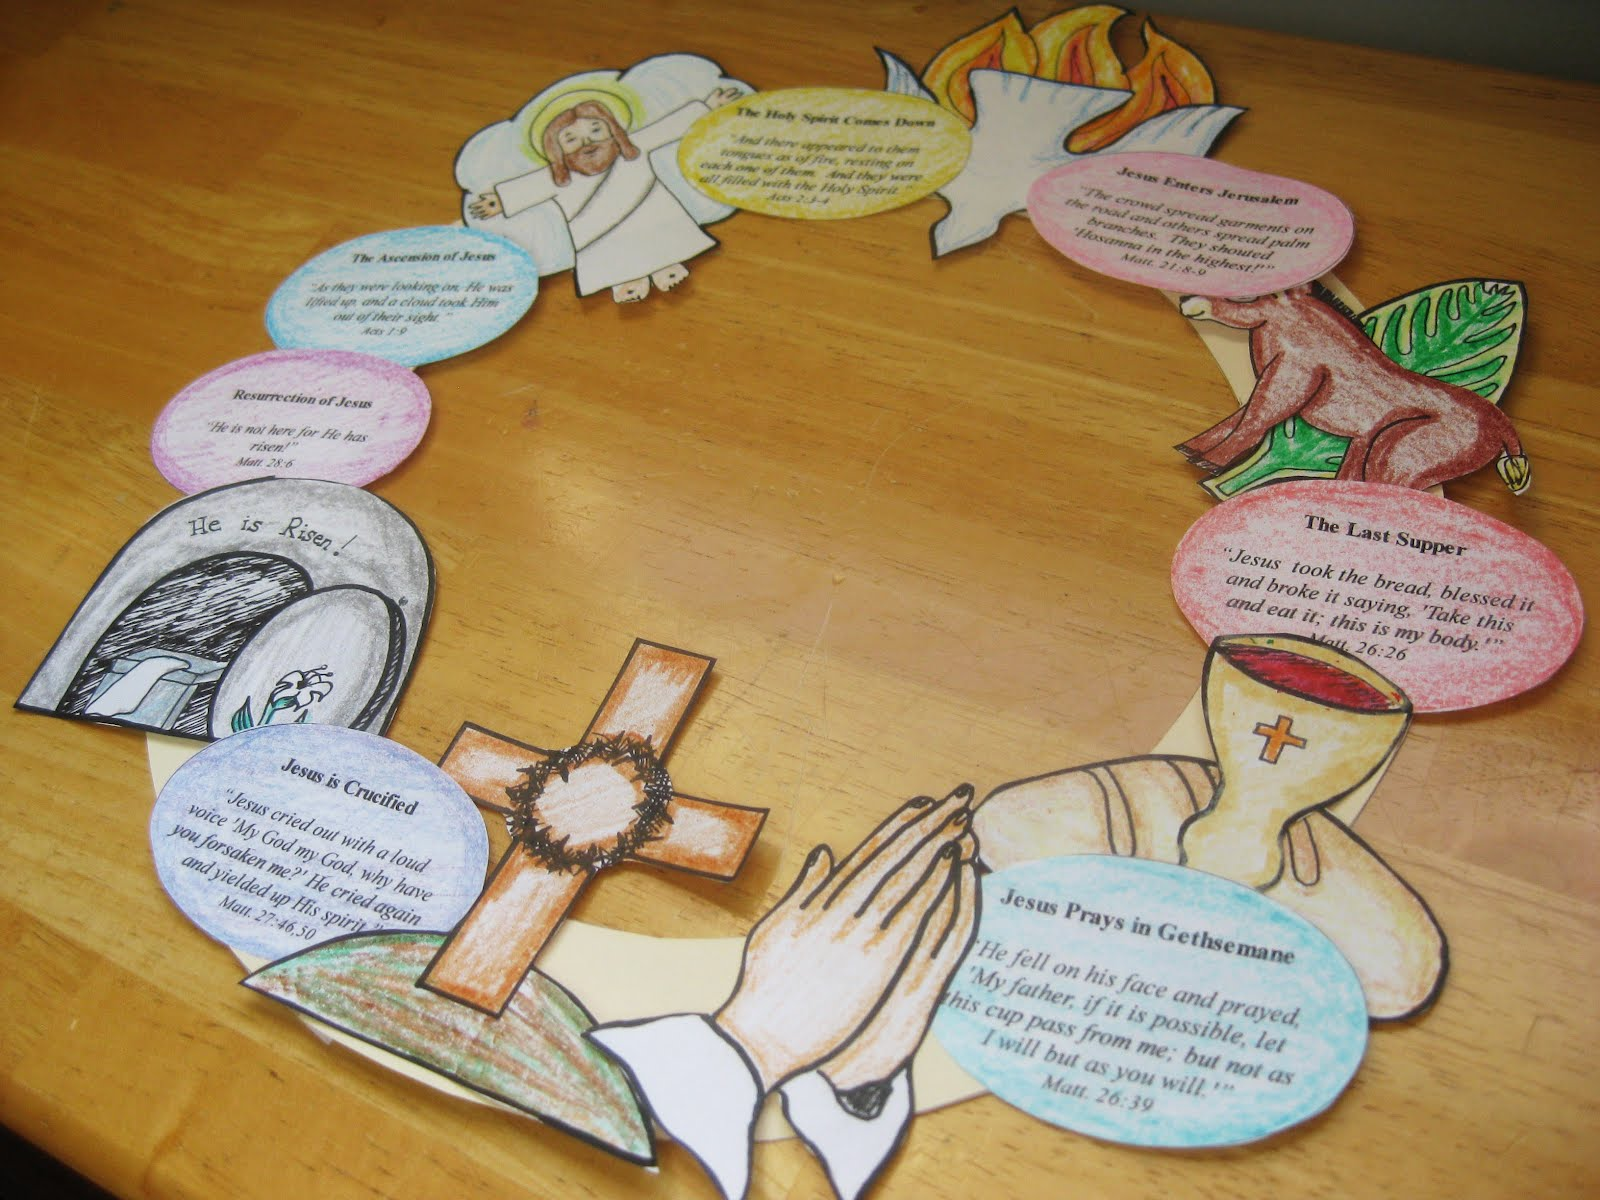 Of An Easter Story Wreath Please Feel Free To Print As Many You Like There Are Three Documents 2 Image Docs And One Scripture Egg Doc